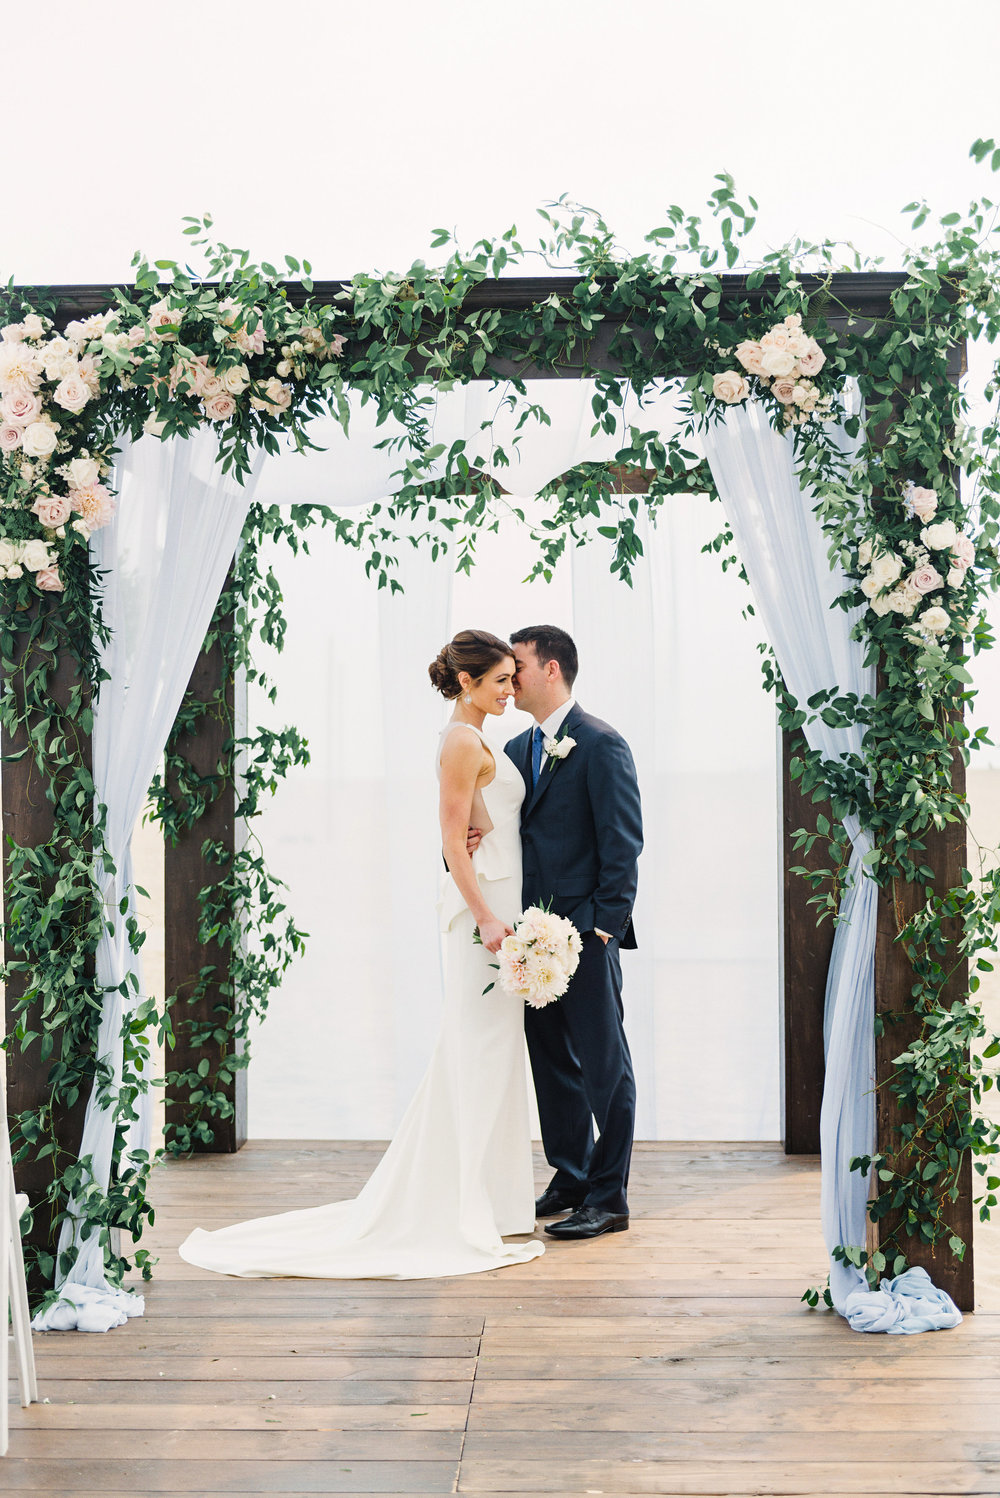 REAL WEDDING: STYLE ME PRETTY - Laura & Brian's wedding was a true delight to design from start to finish. Creating an effortless beach soiree with elegant, big-city bash entertainment and a twist was the goal from day one...MORE ›